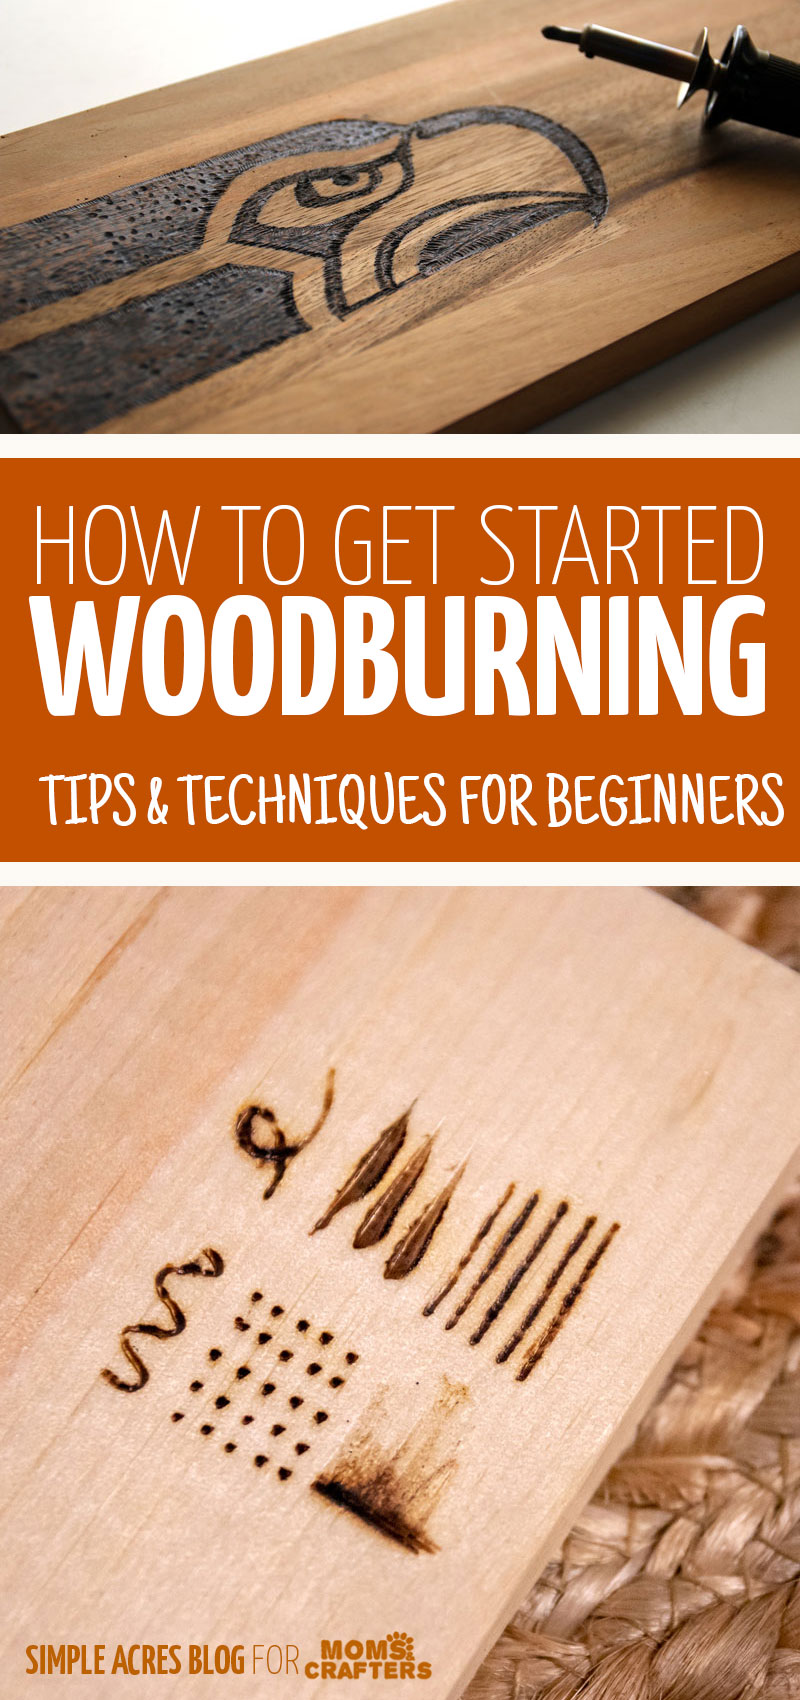 click for woodburning tips and techniques for beginners! Make your own wood burning signs and spoons, and more as DIY gifts! #woodburning #pyrography